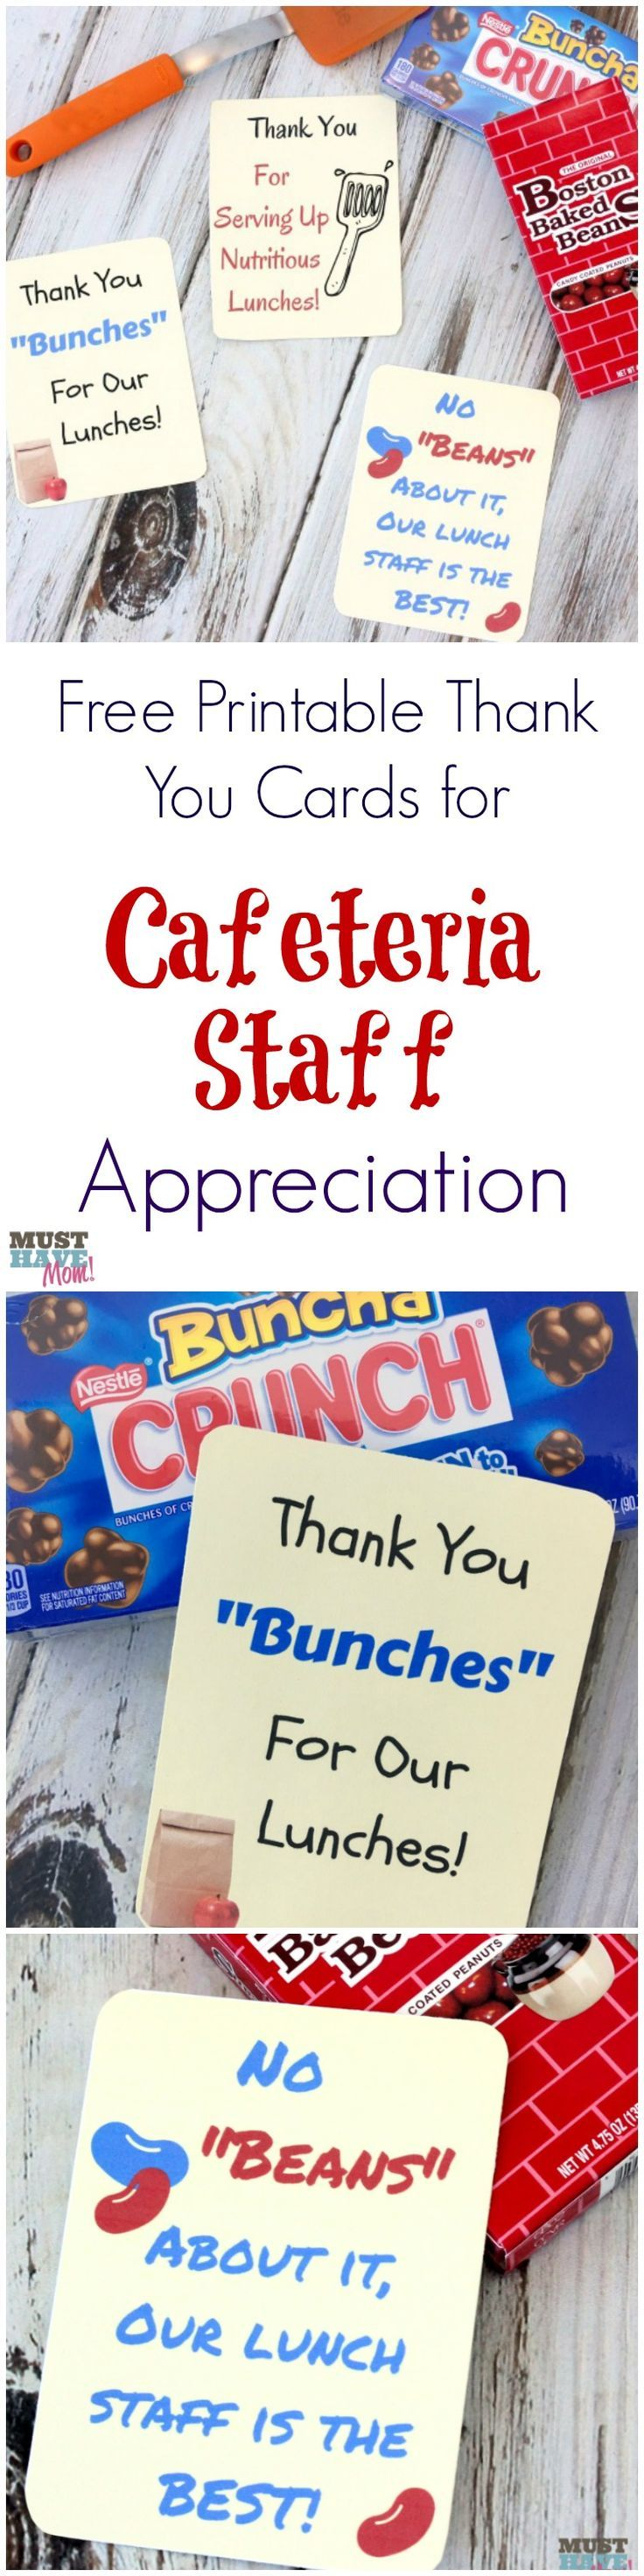 Free printable thank you cards for cafeteria staff ...